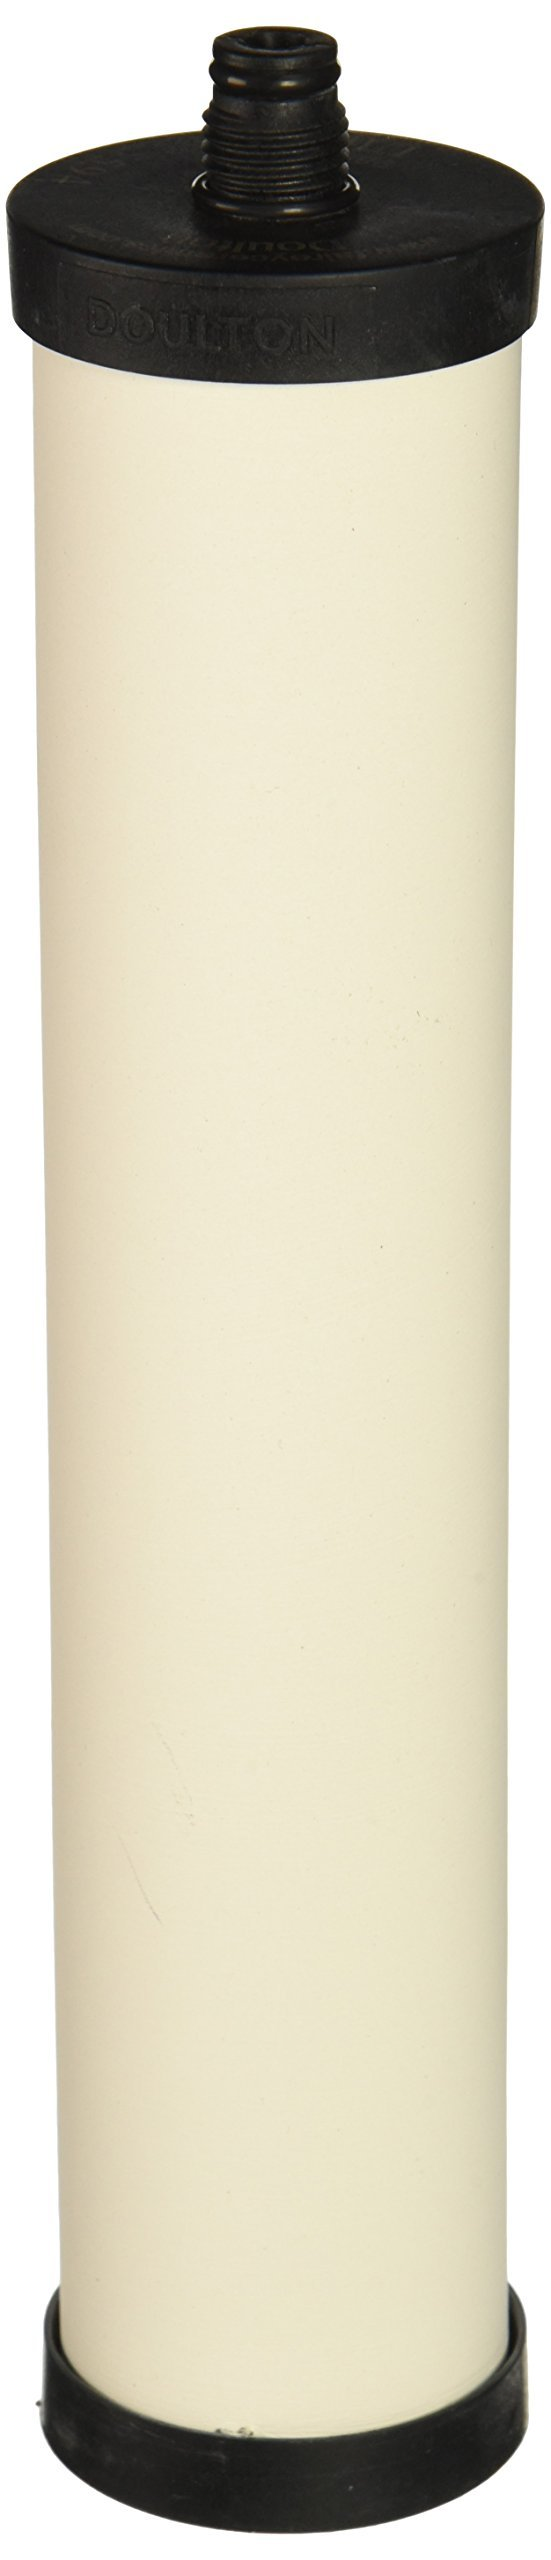 Doulton W9223021 UltraCarb M15 FRX02 Franke Filter by Doulton